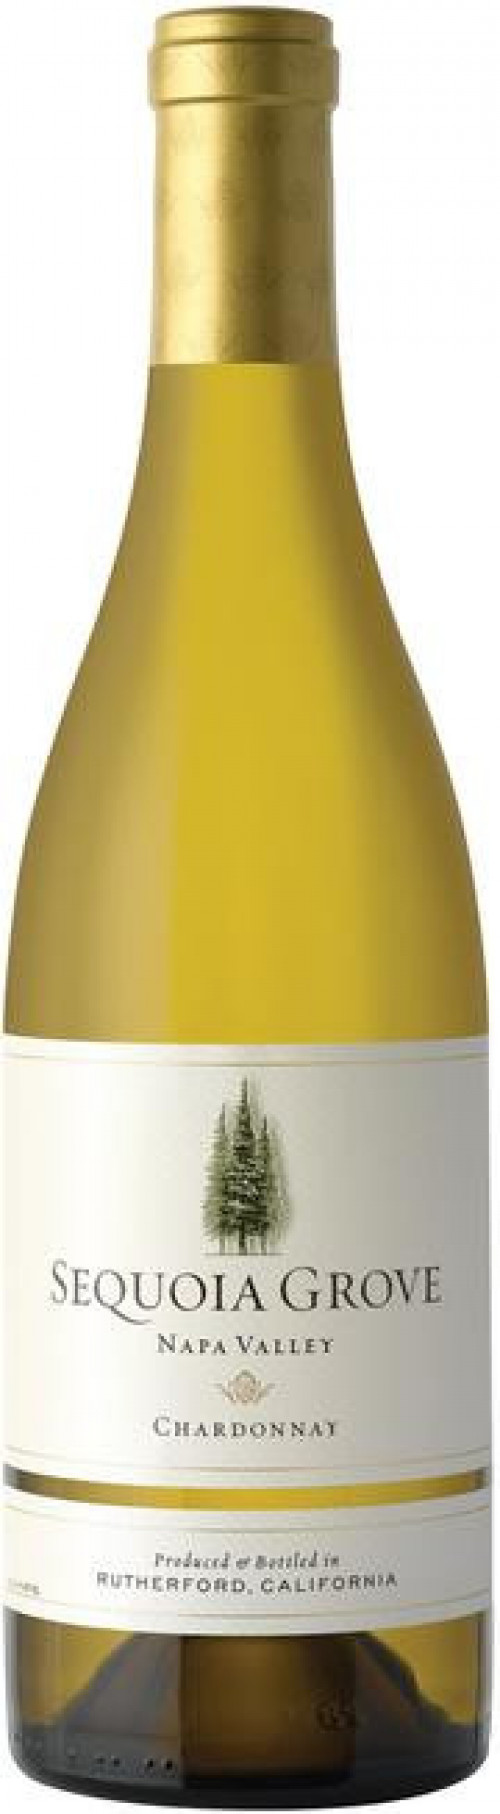 Sequoia Grove Chardonnay 750ml